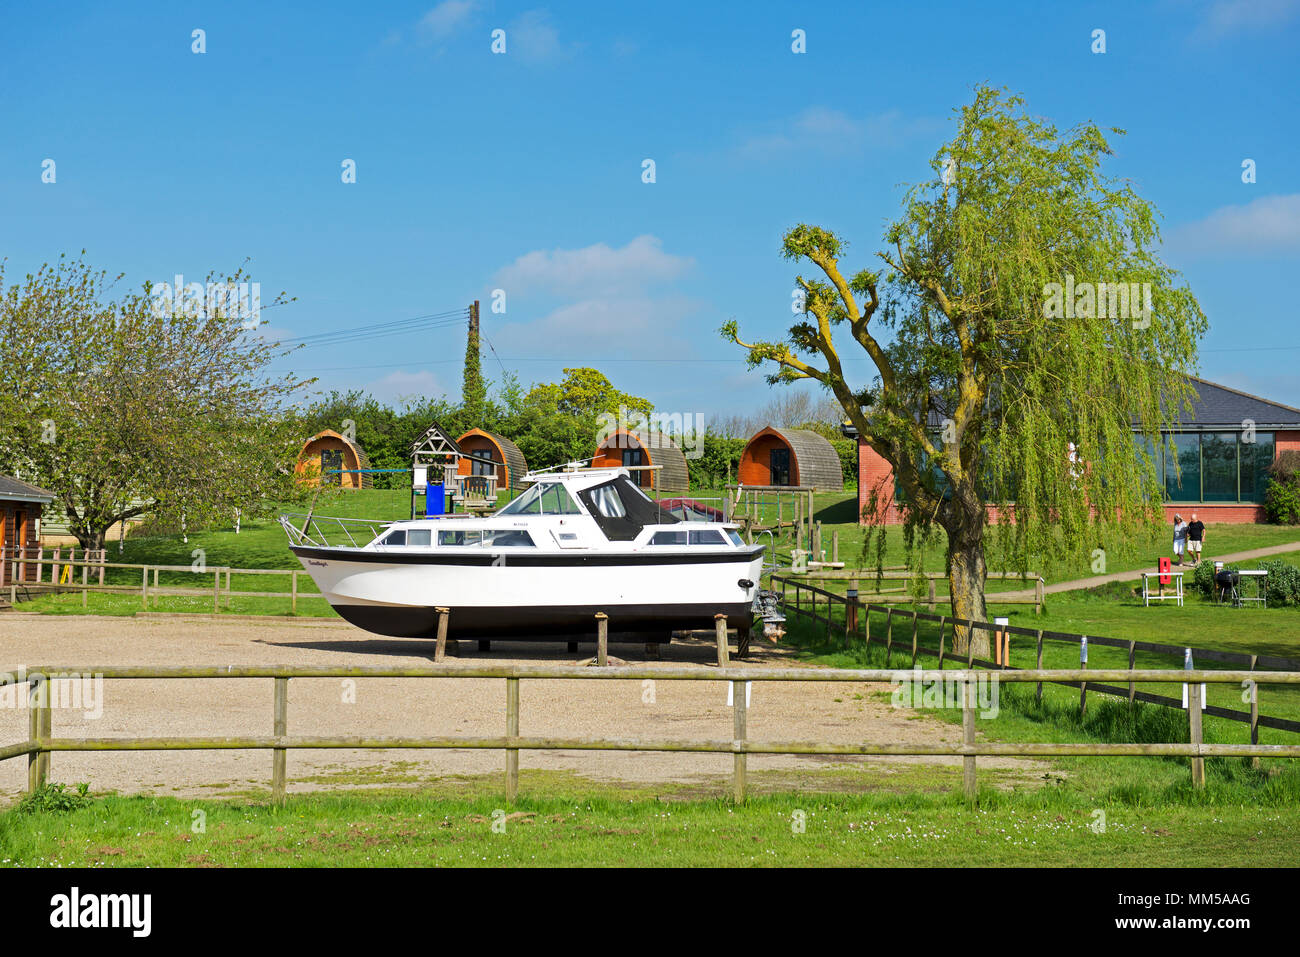 The Waveney River Centre, Burgh St Peter, Norfolk, England UK - Stock Image